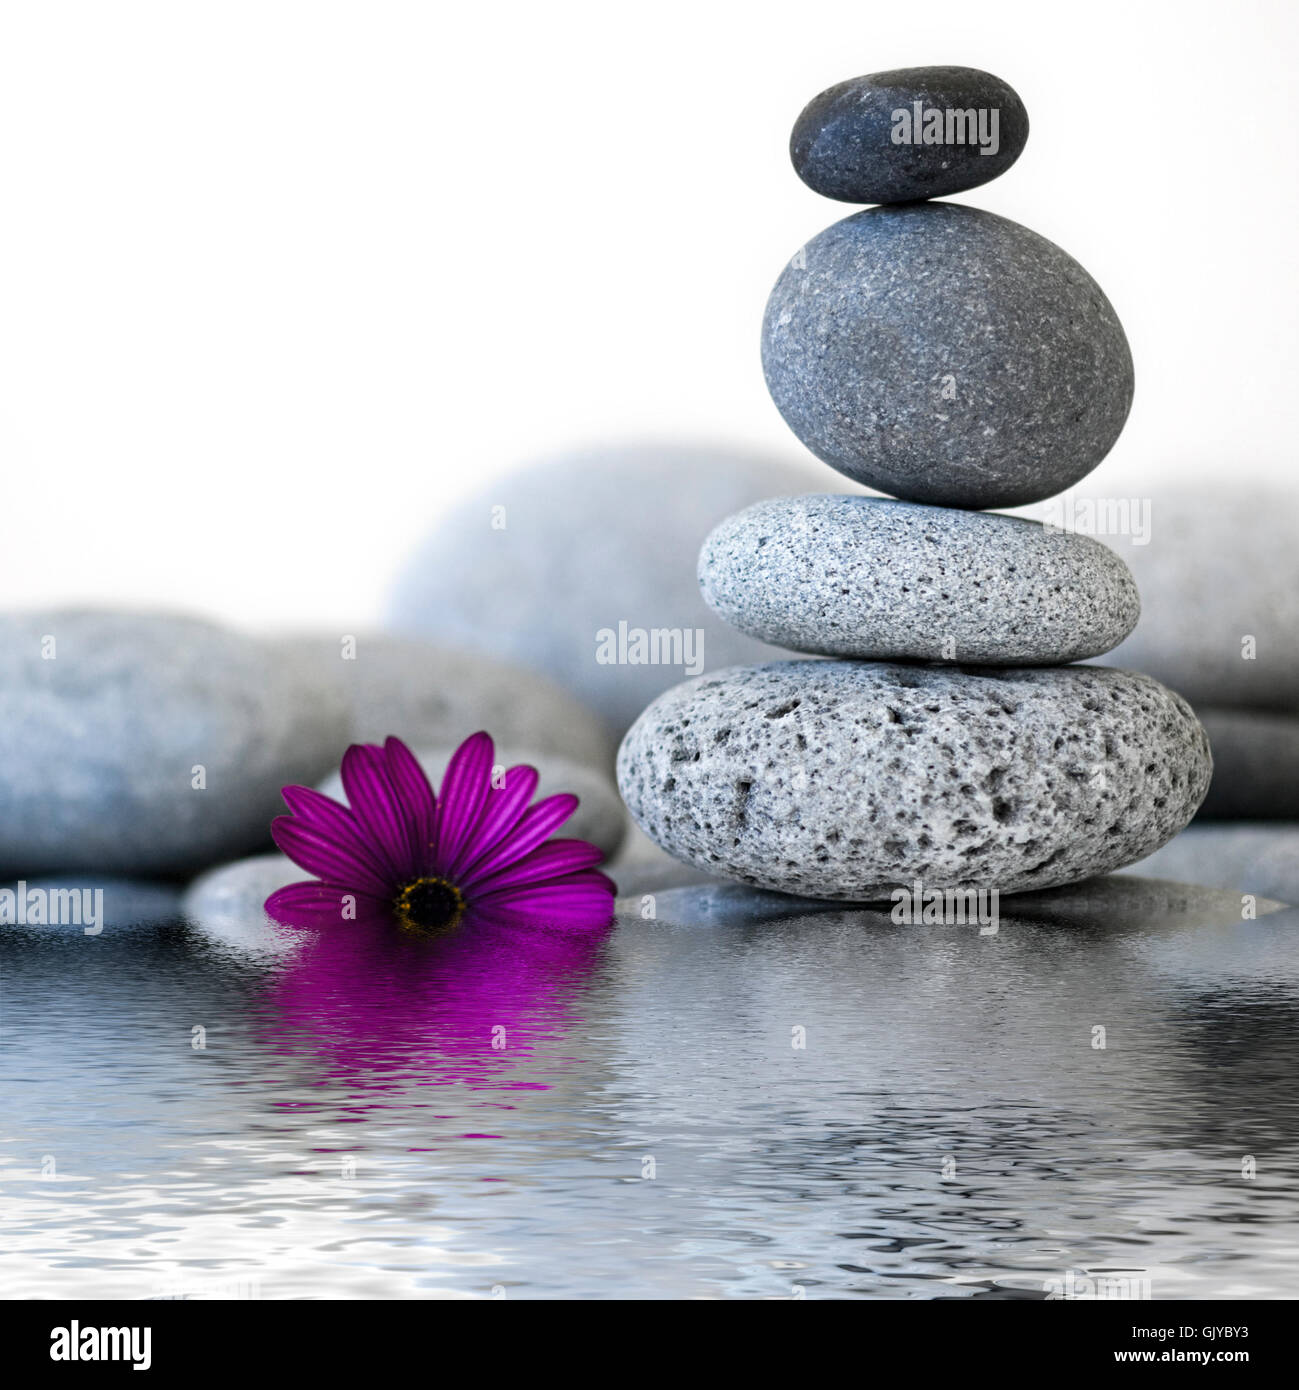 stone tower and water - Stock Image